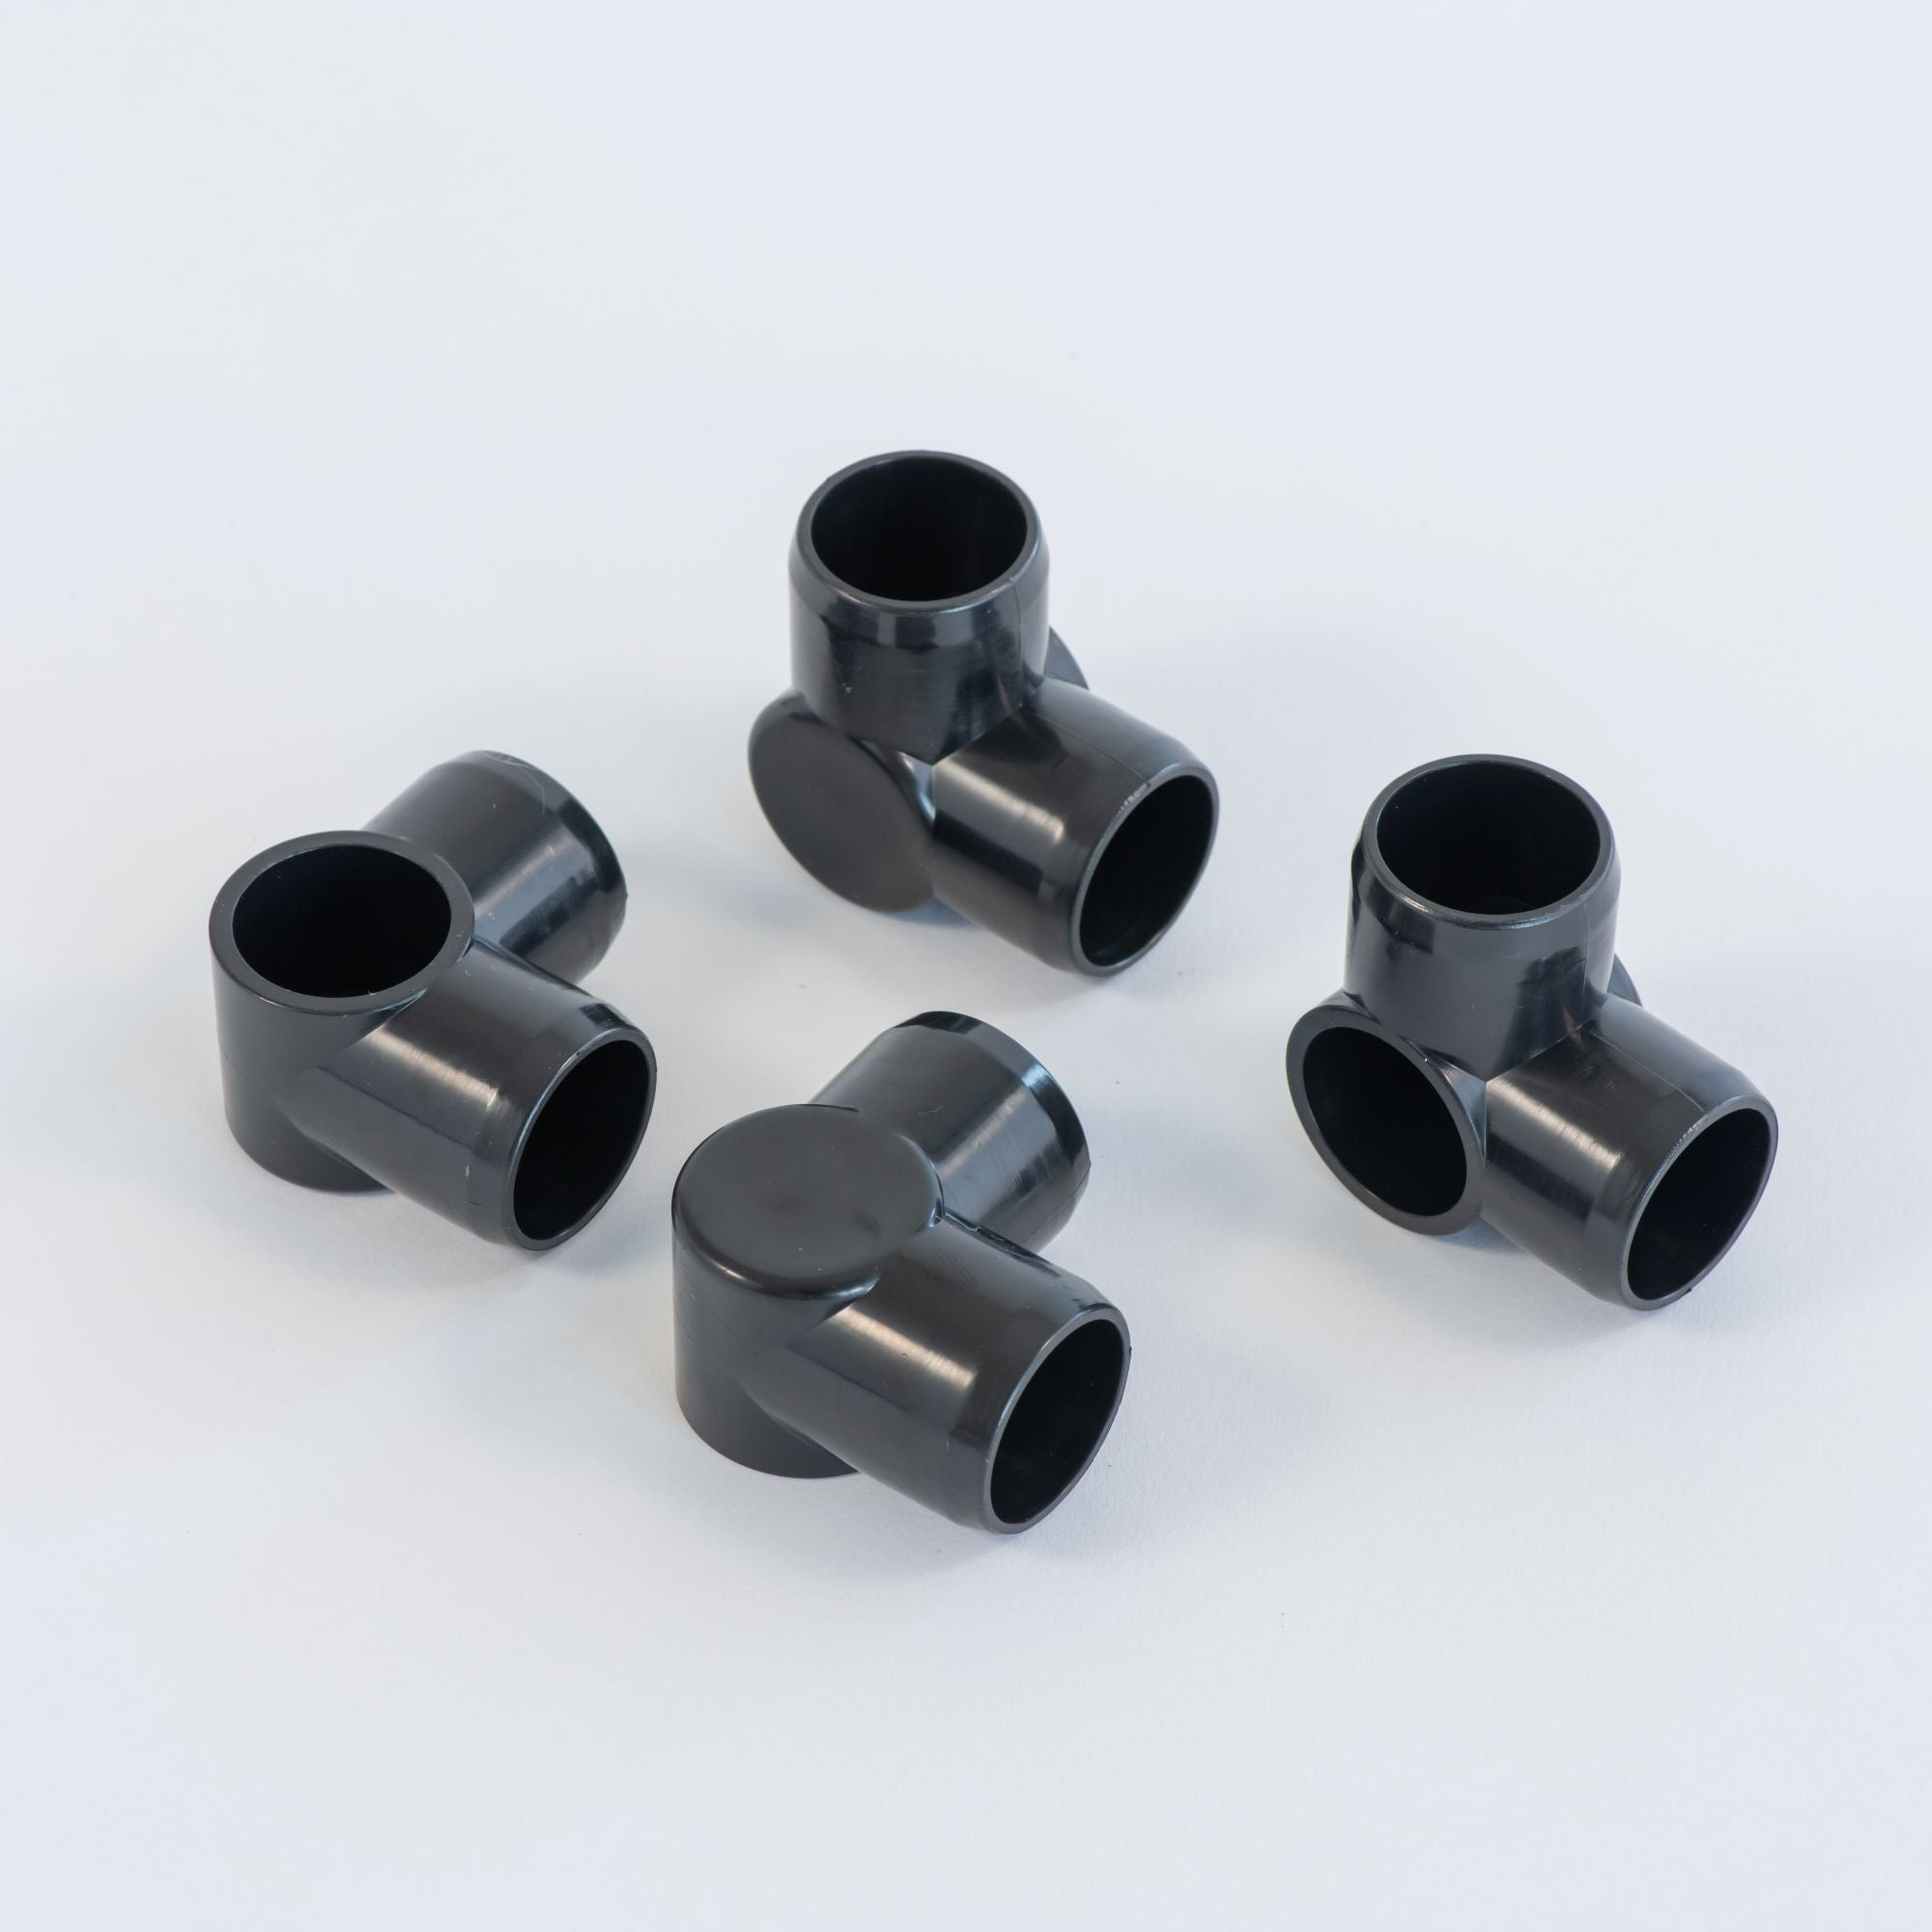 3-Way Connectors for EZclassic Rails (4-pack)